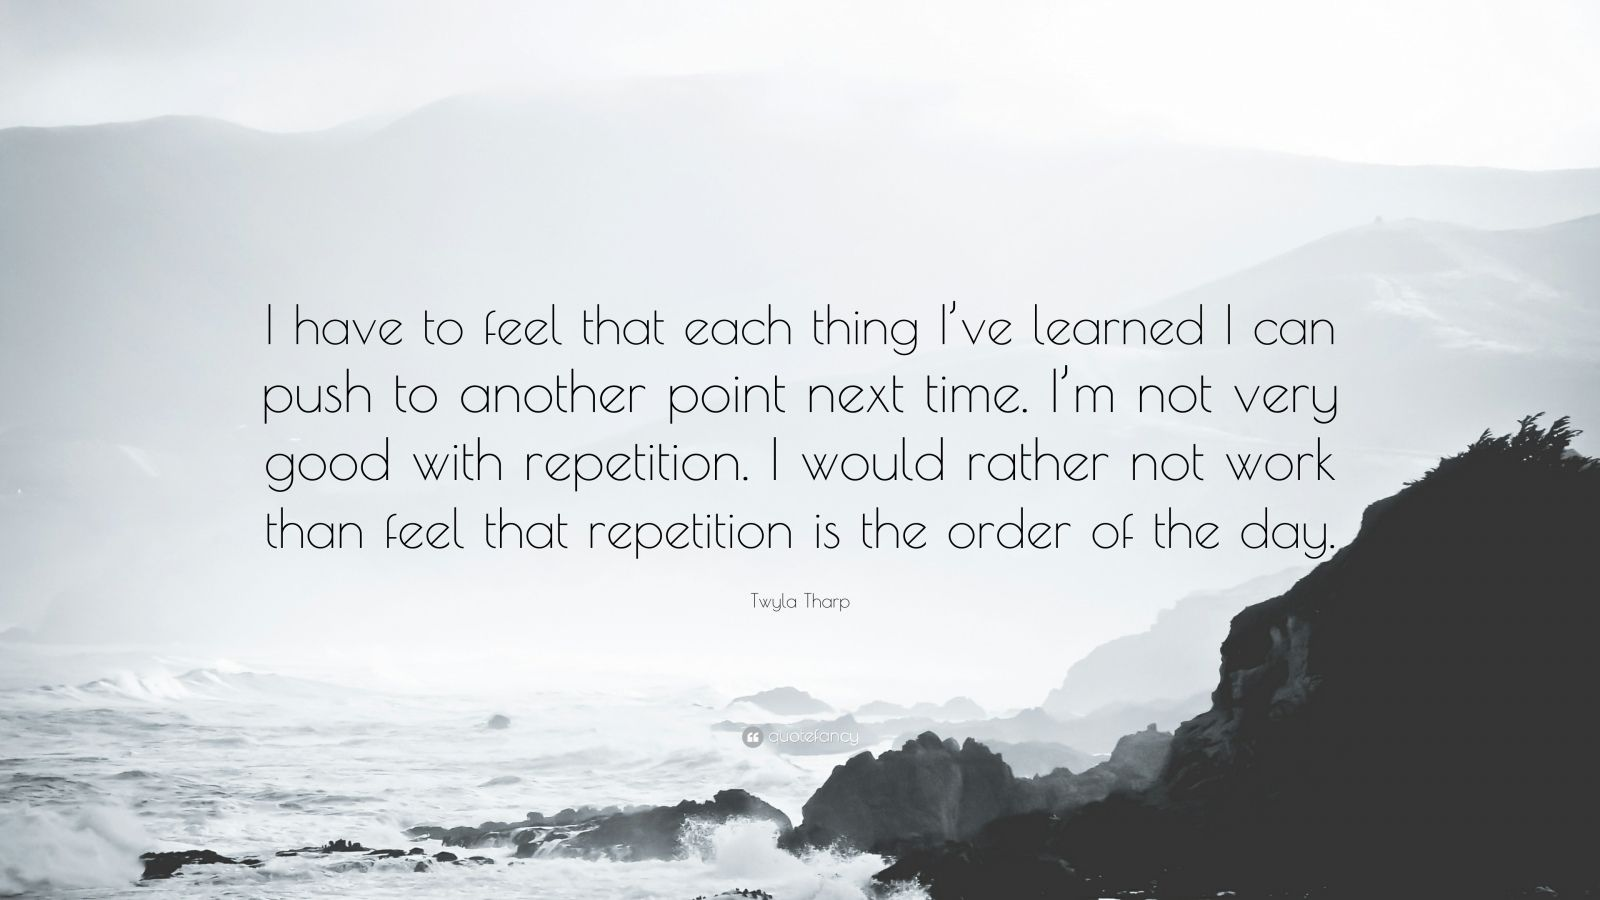 """Twyla Tharp Quote: """"I have to feel that each thing I've learned I can push to another point next time. I'm not very good with repetition. I would rather not work than feel that repetition is the order of the day."""""""